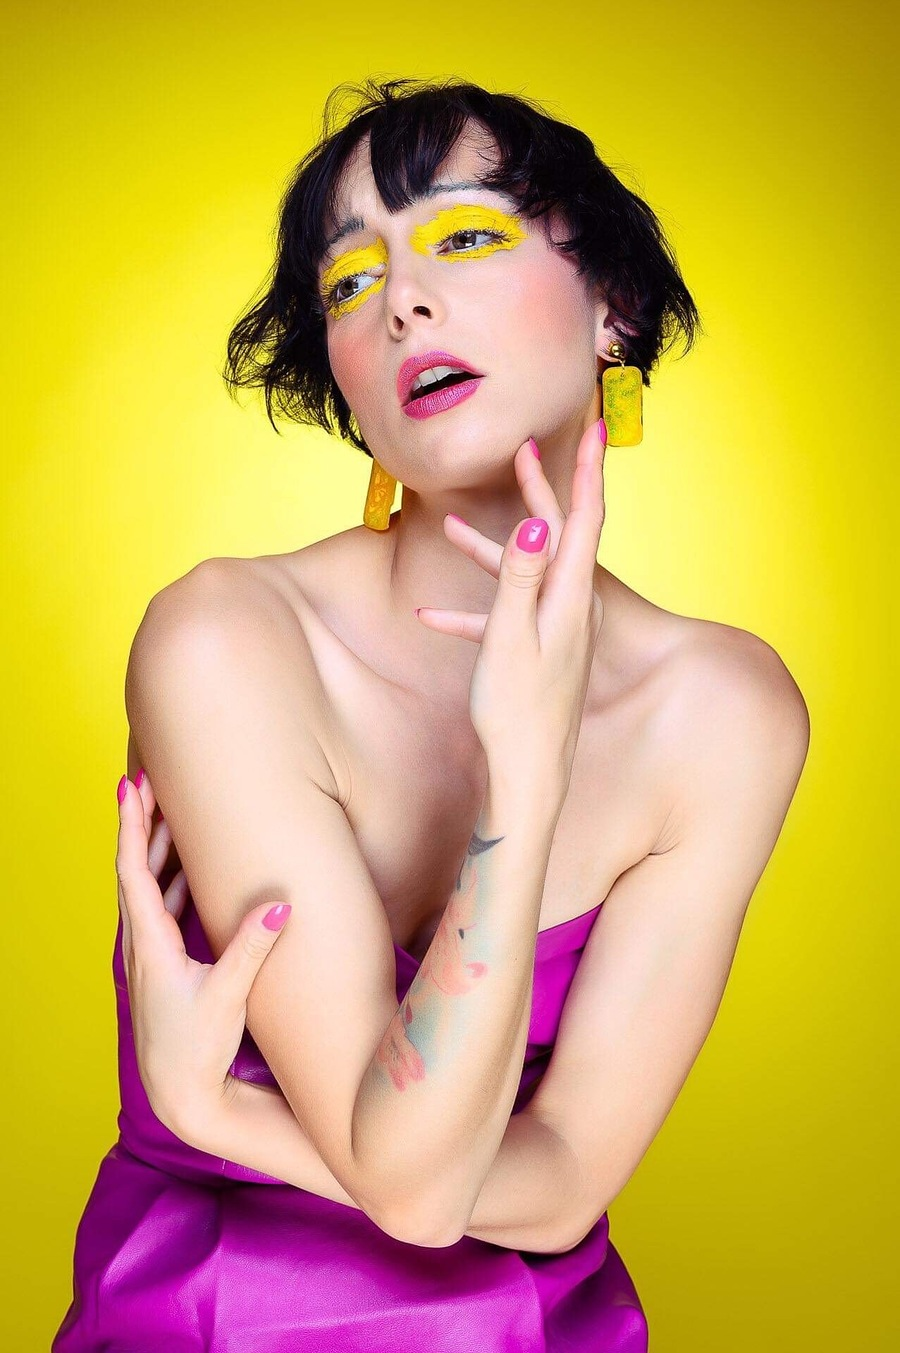 Life in Technicolor / Photography by Gav Woodgate, Model Marie Jean Taylor, Makeup by Keli Cartwright HMUA, Post processing by Gav Woodgate, Taken at YorkPhotoStudio / Uploaded 2nd June 2019 @ 06:36 PM